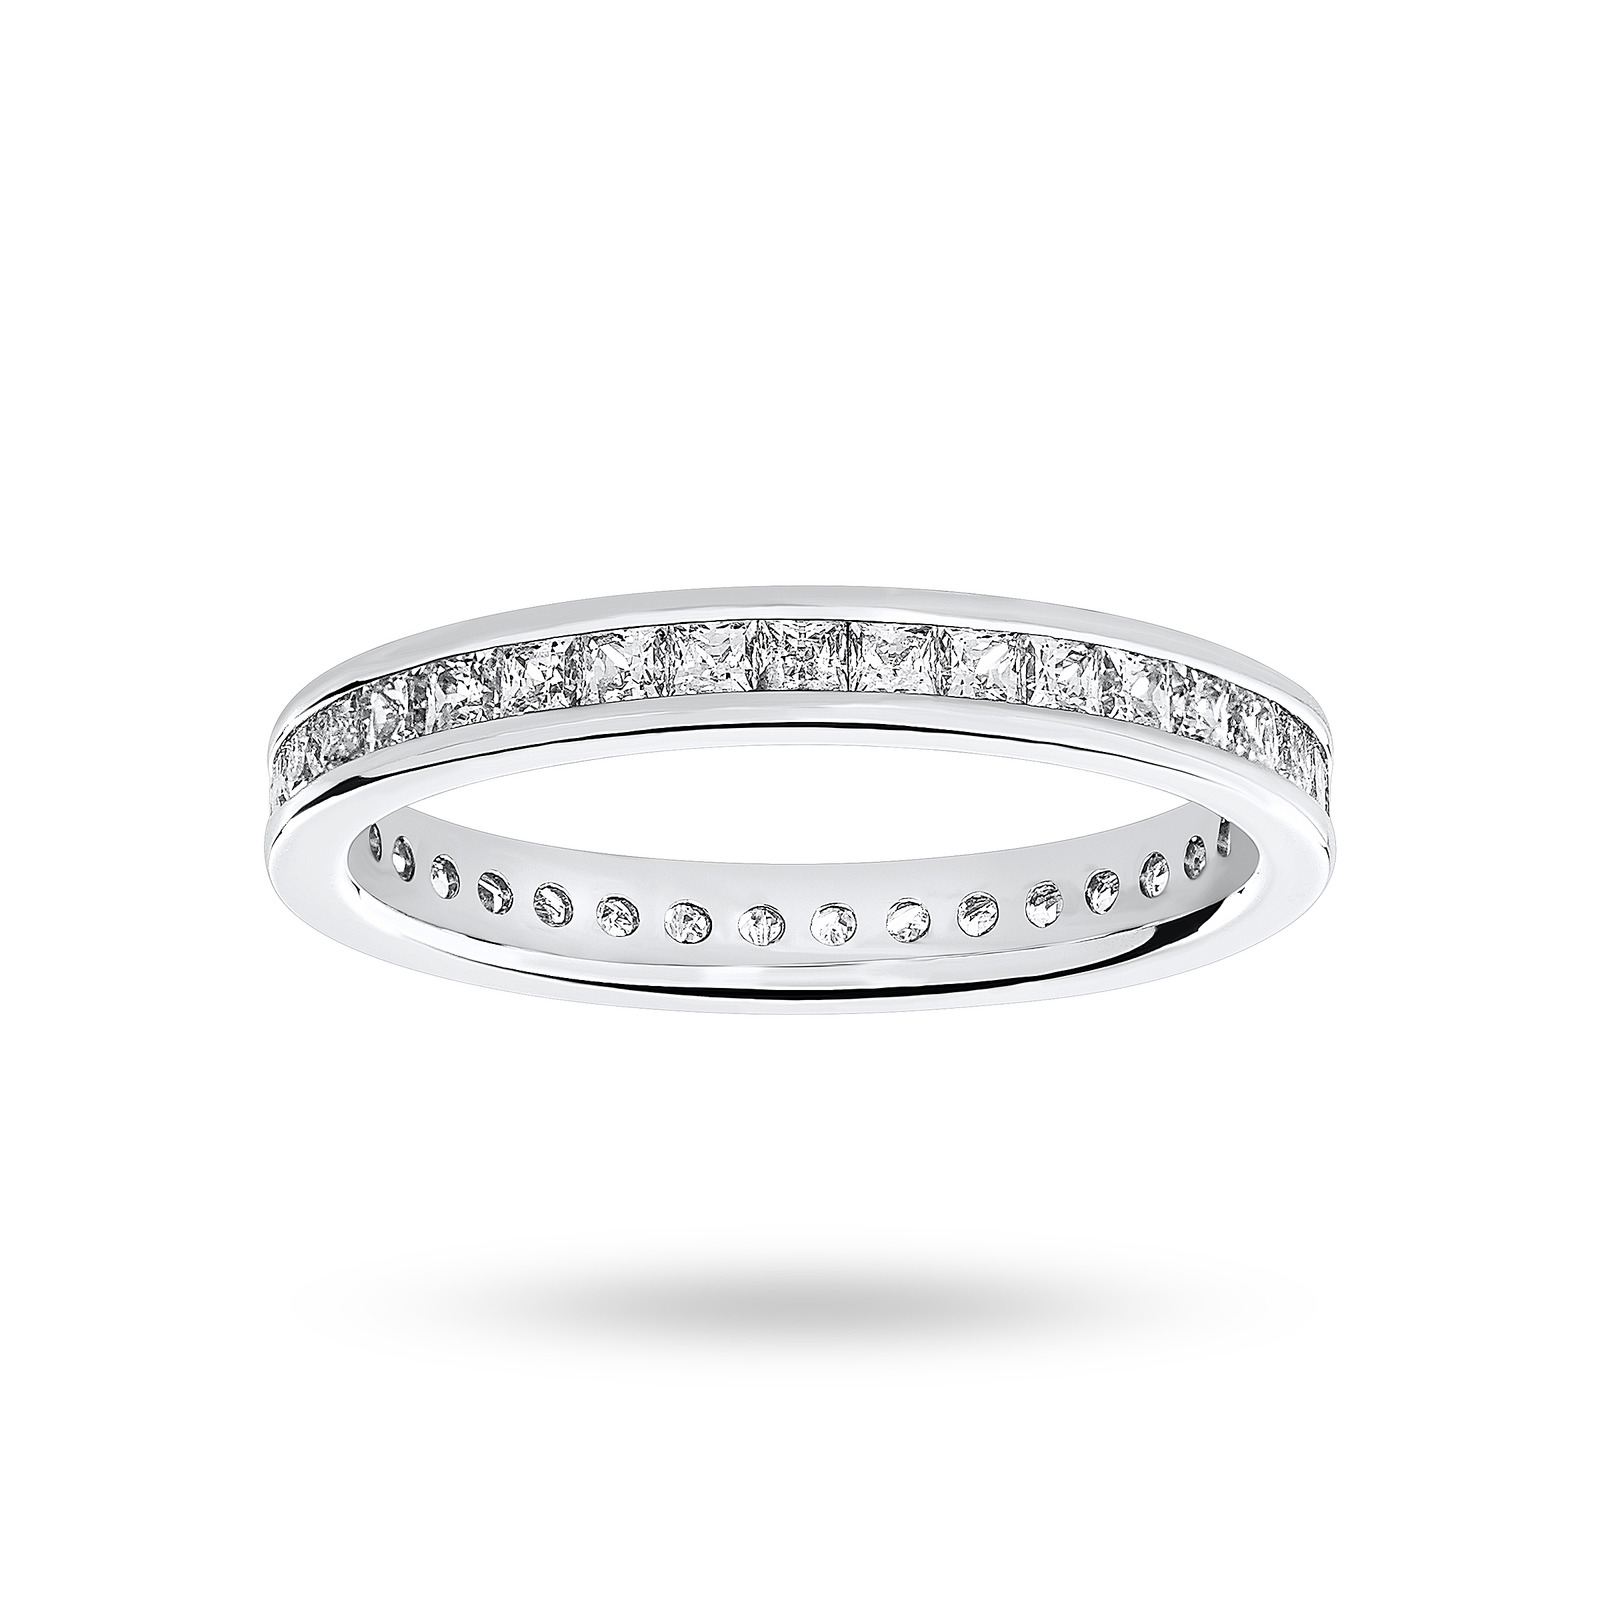 Platinum 1.00cttw Diamond Full Eternity Ring